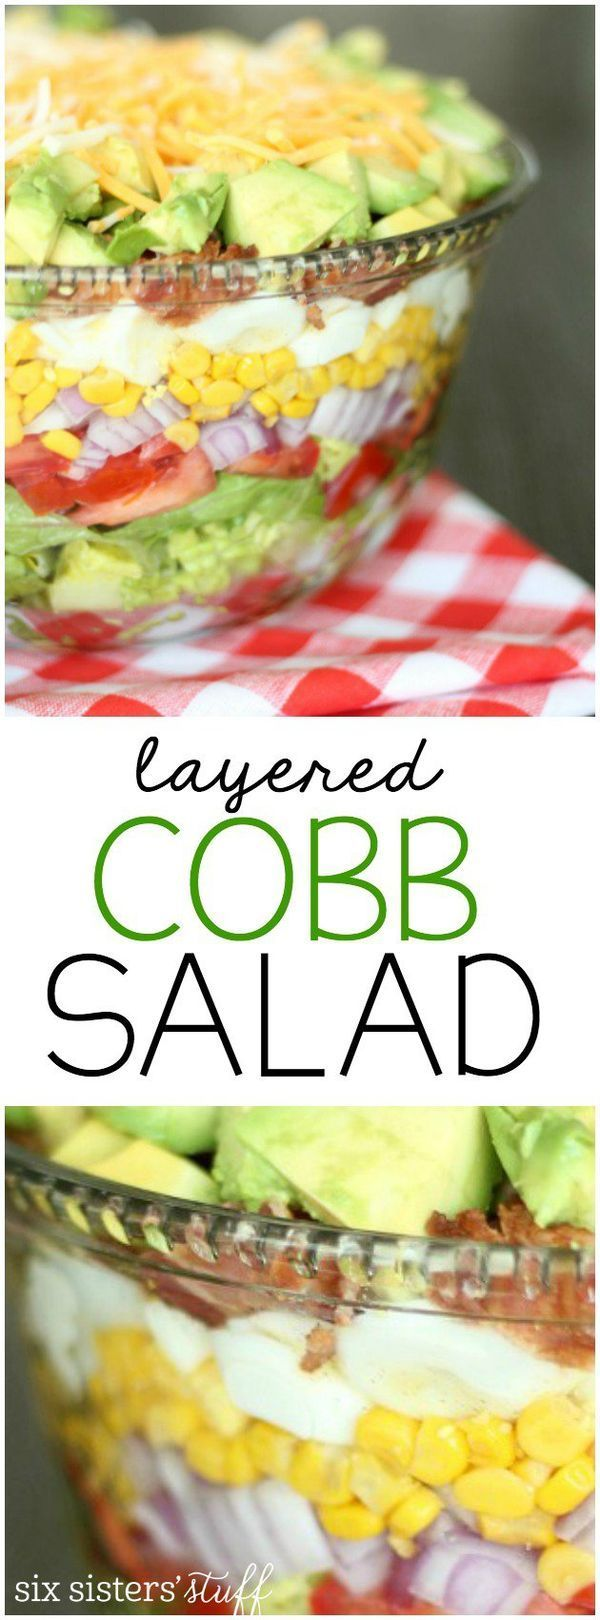 Try this delicious Layered Cobb Salad recipe with Marzetti's Simply Dressed Blue Cheese dressing. Perfect for your next dinner party or family barbecue!  #ad #Marzetti